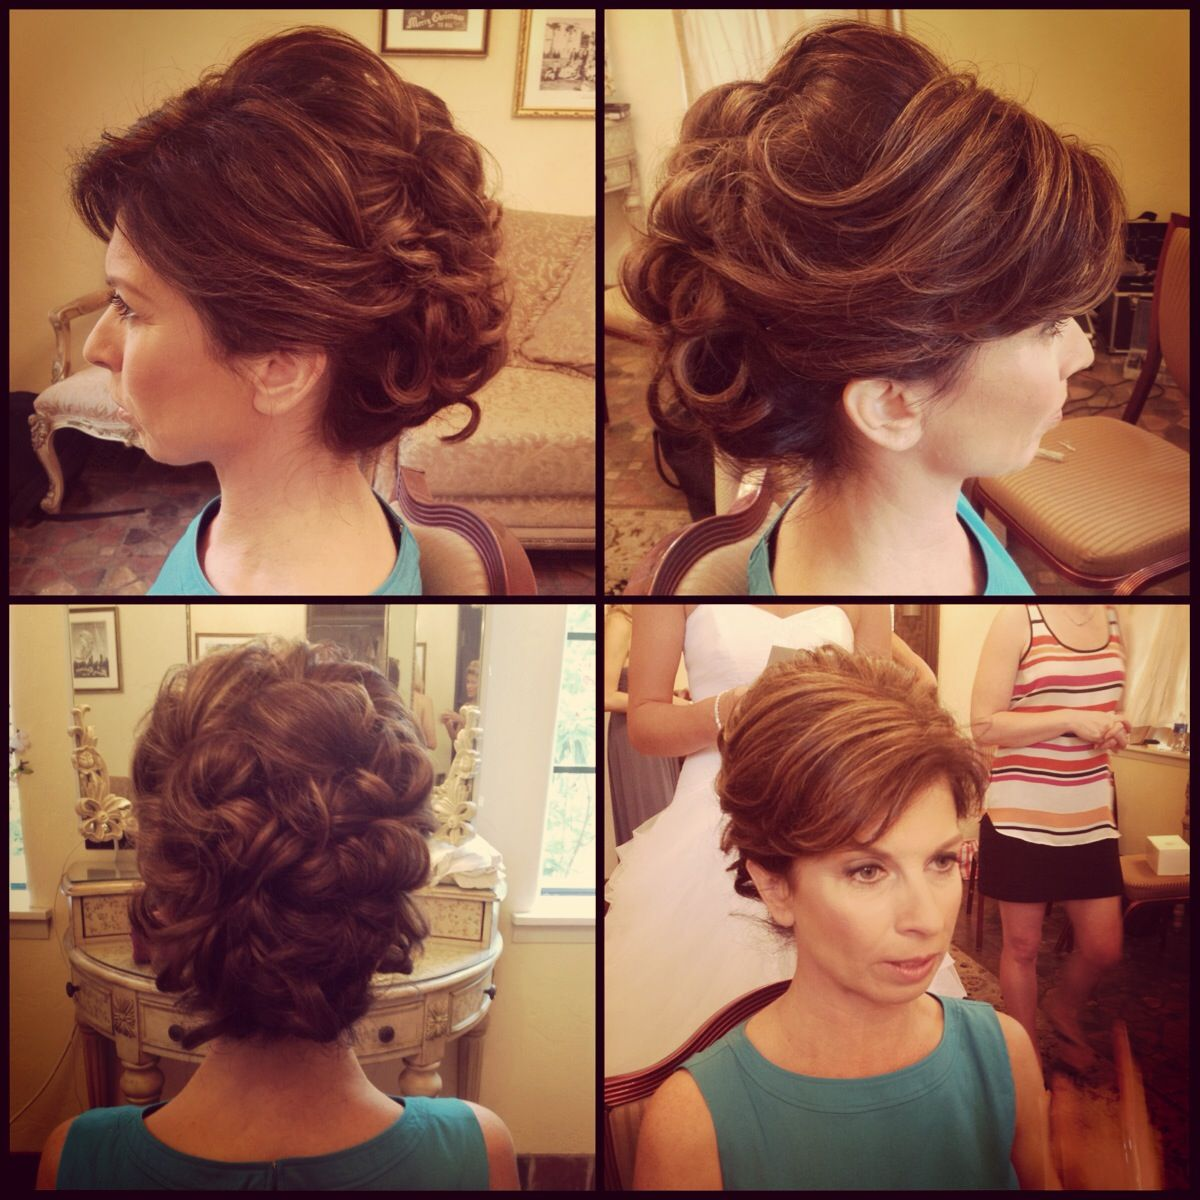 Wedding Hairstyles For Mom: Short Hair Updo!